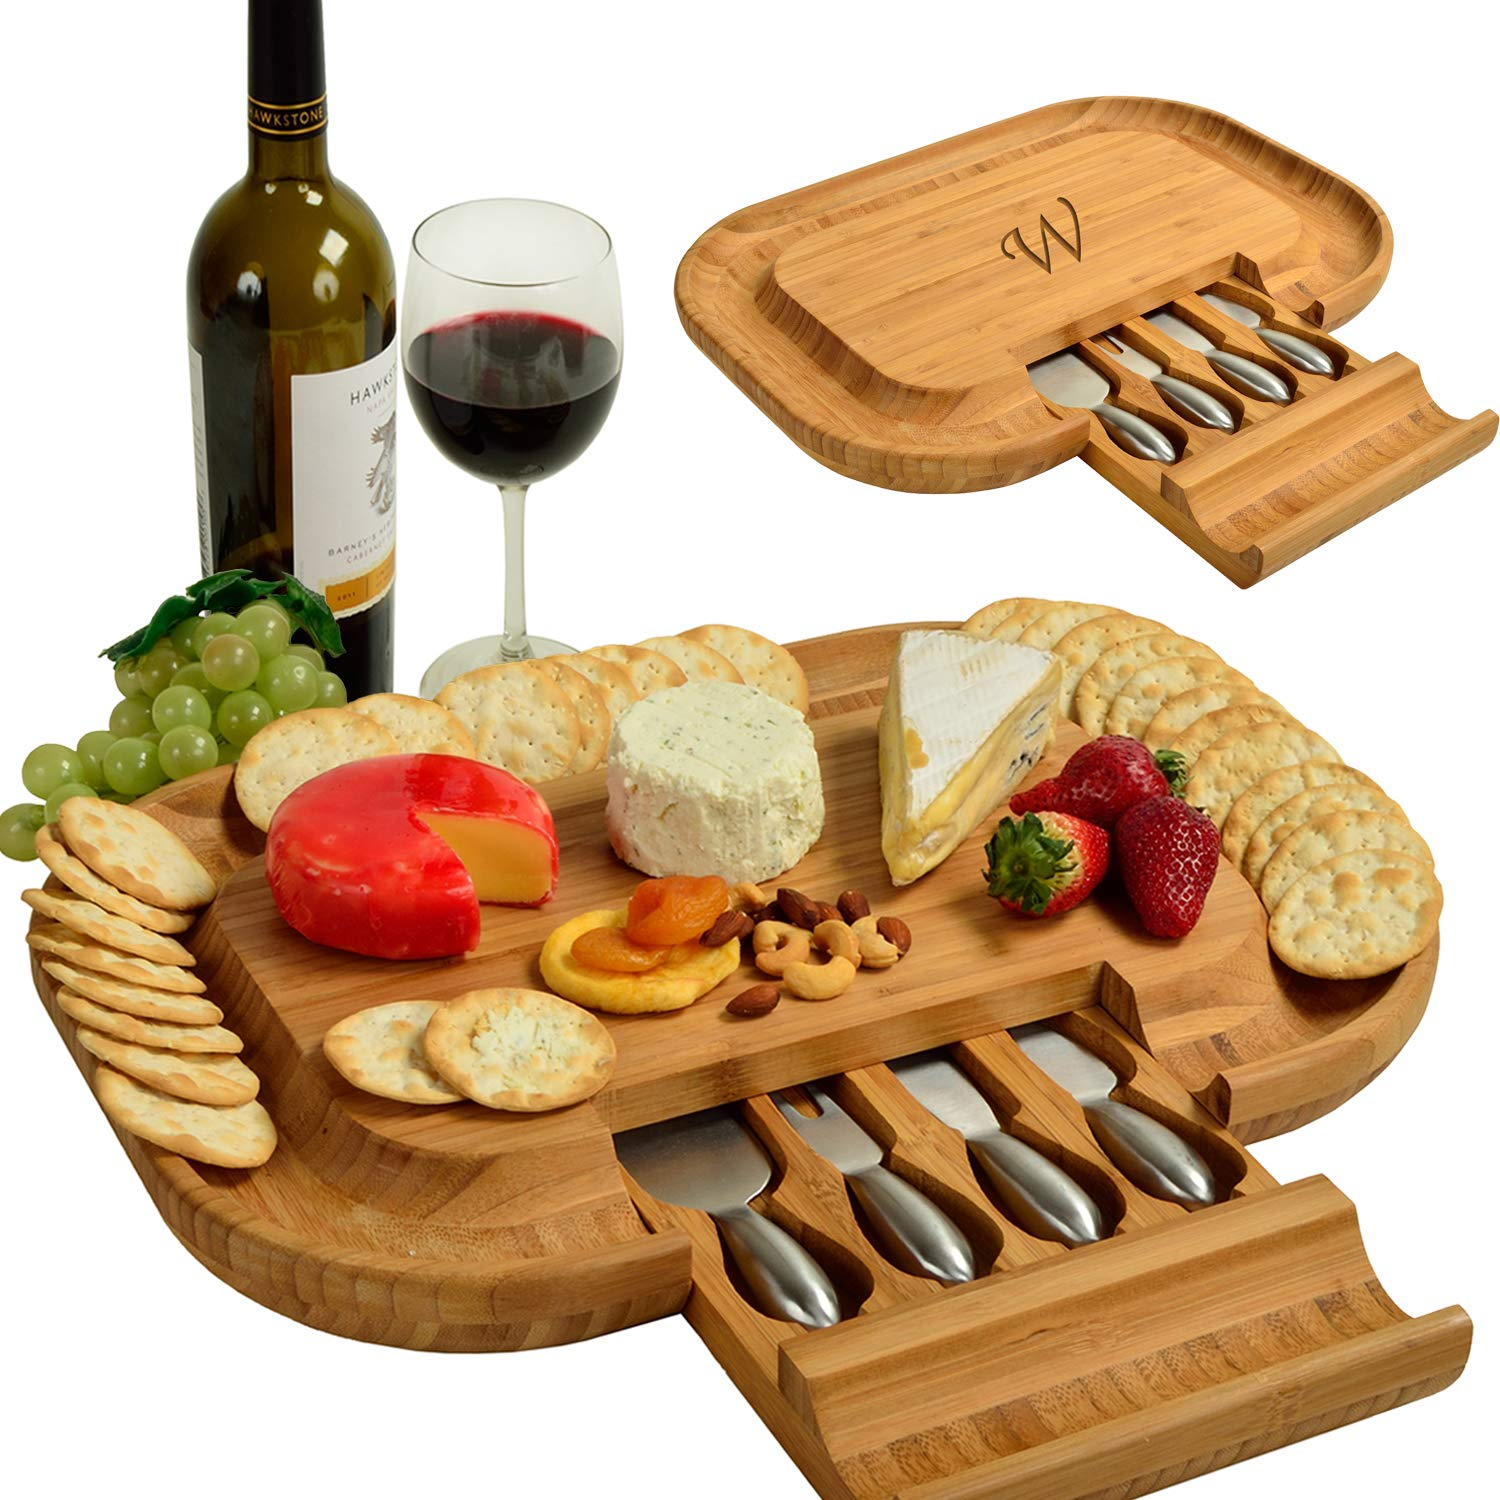 Picnic at Ascot Original Personalized Monogrammed Bamboo Cheese/Charcuterie Board with Knife Set & Cheese Markers- Designed & Quality Checked in USA